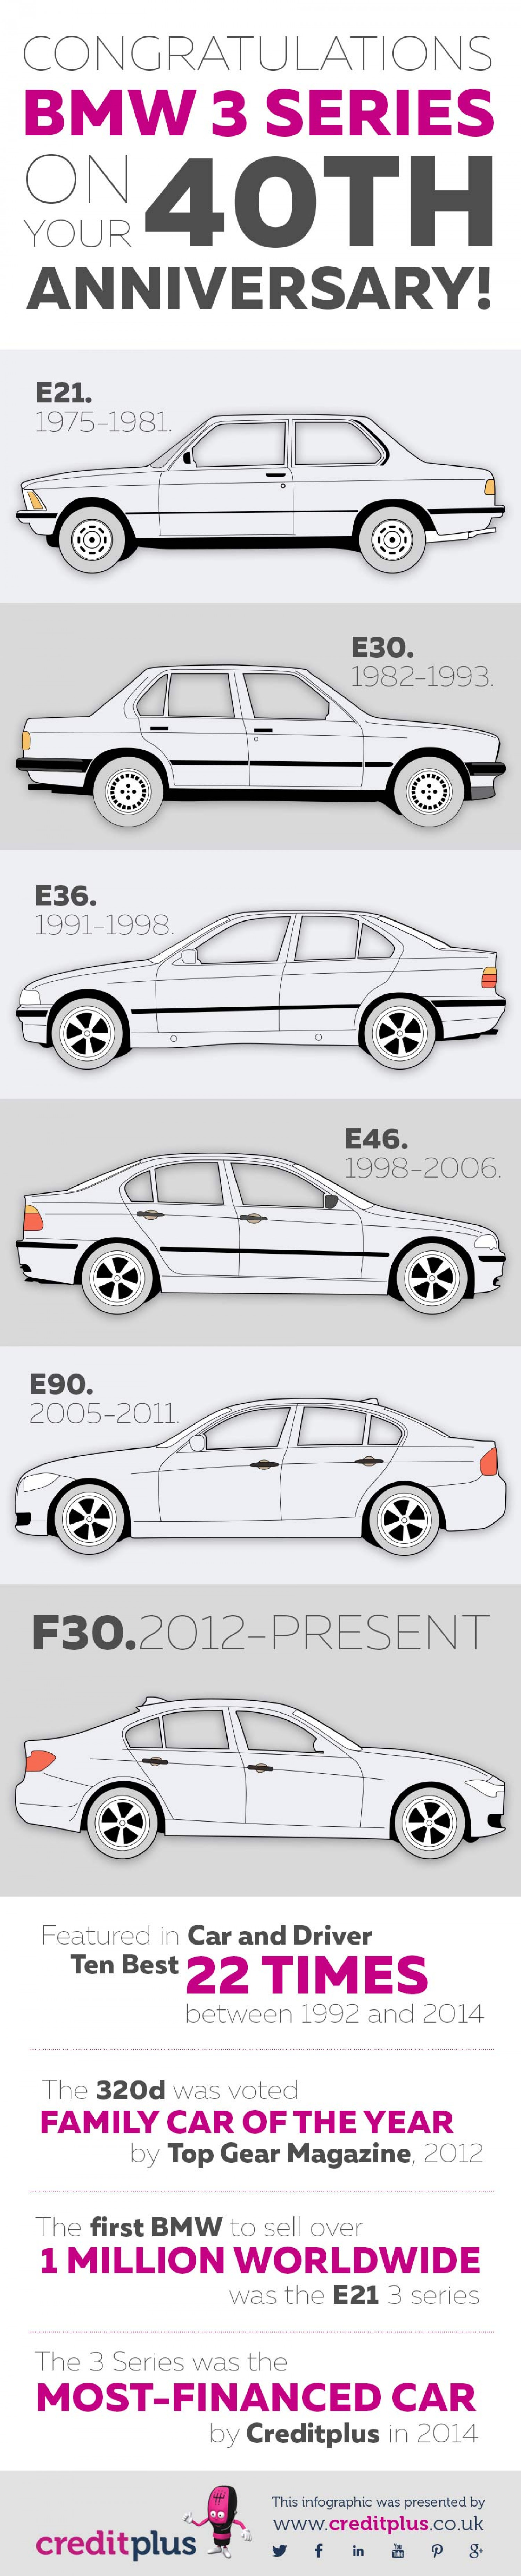 BMW 3 Series - 40 years of excellence Infographic